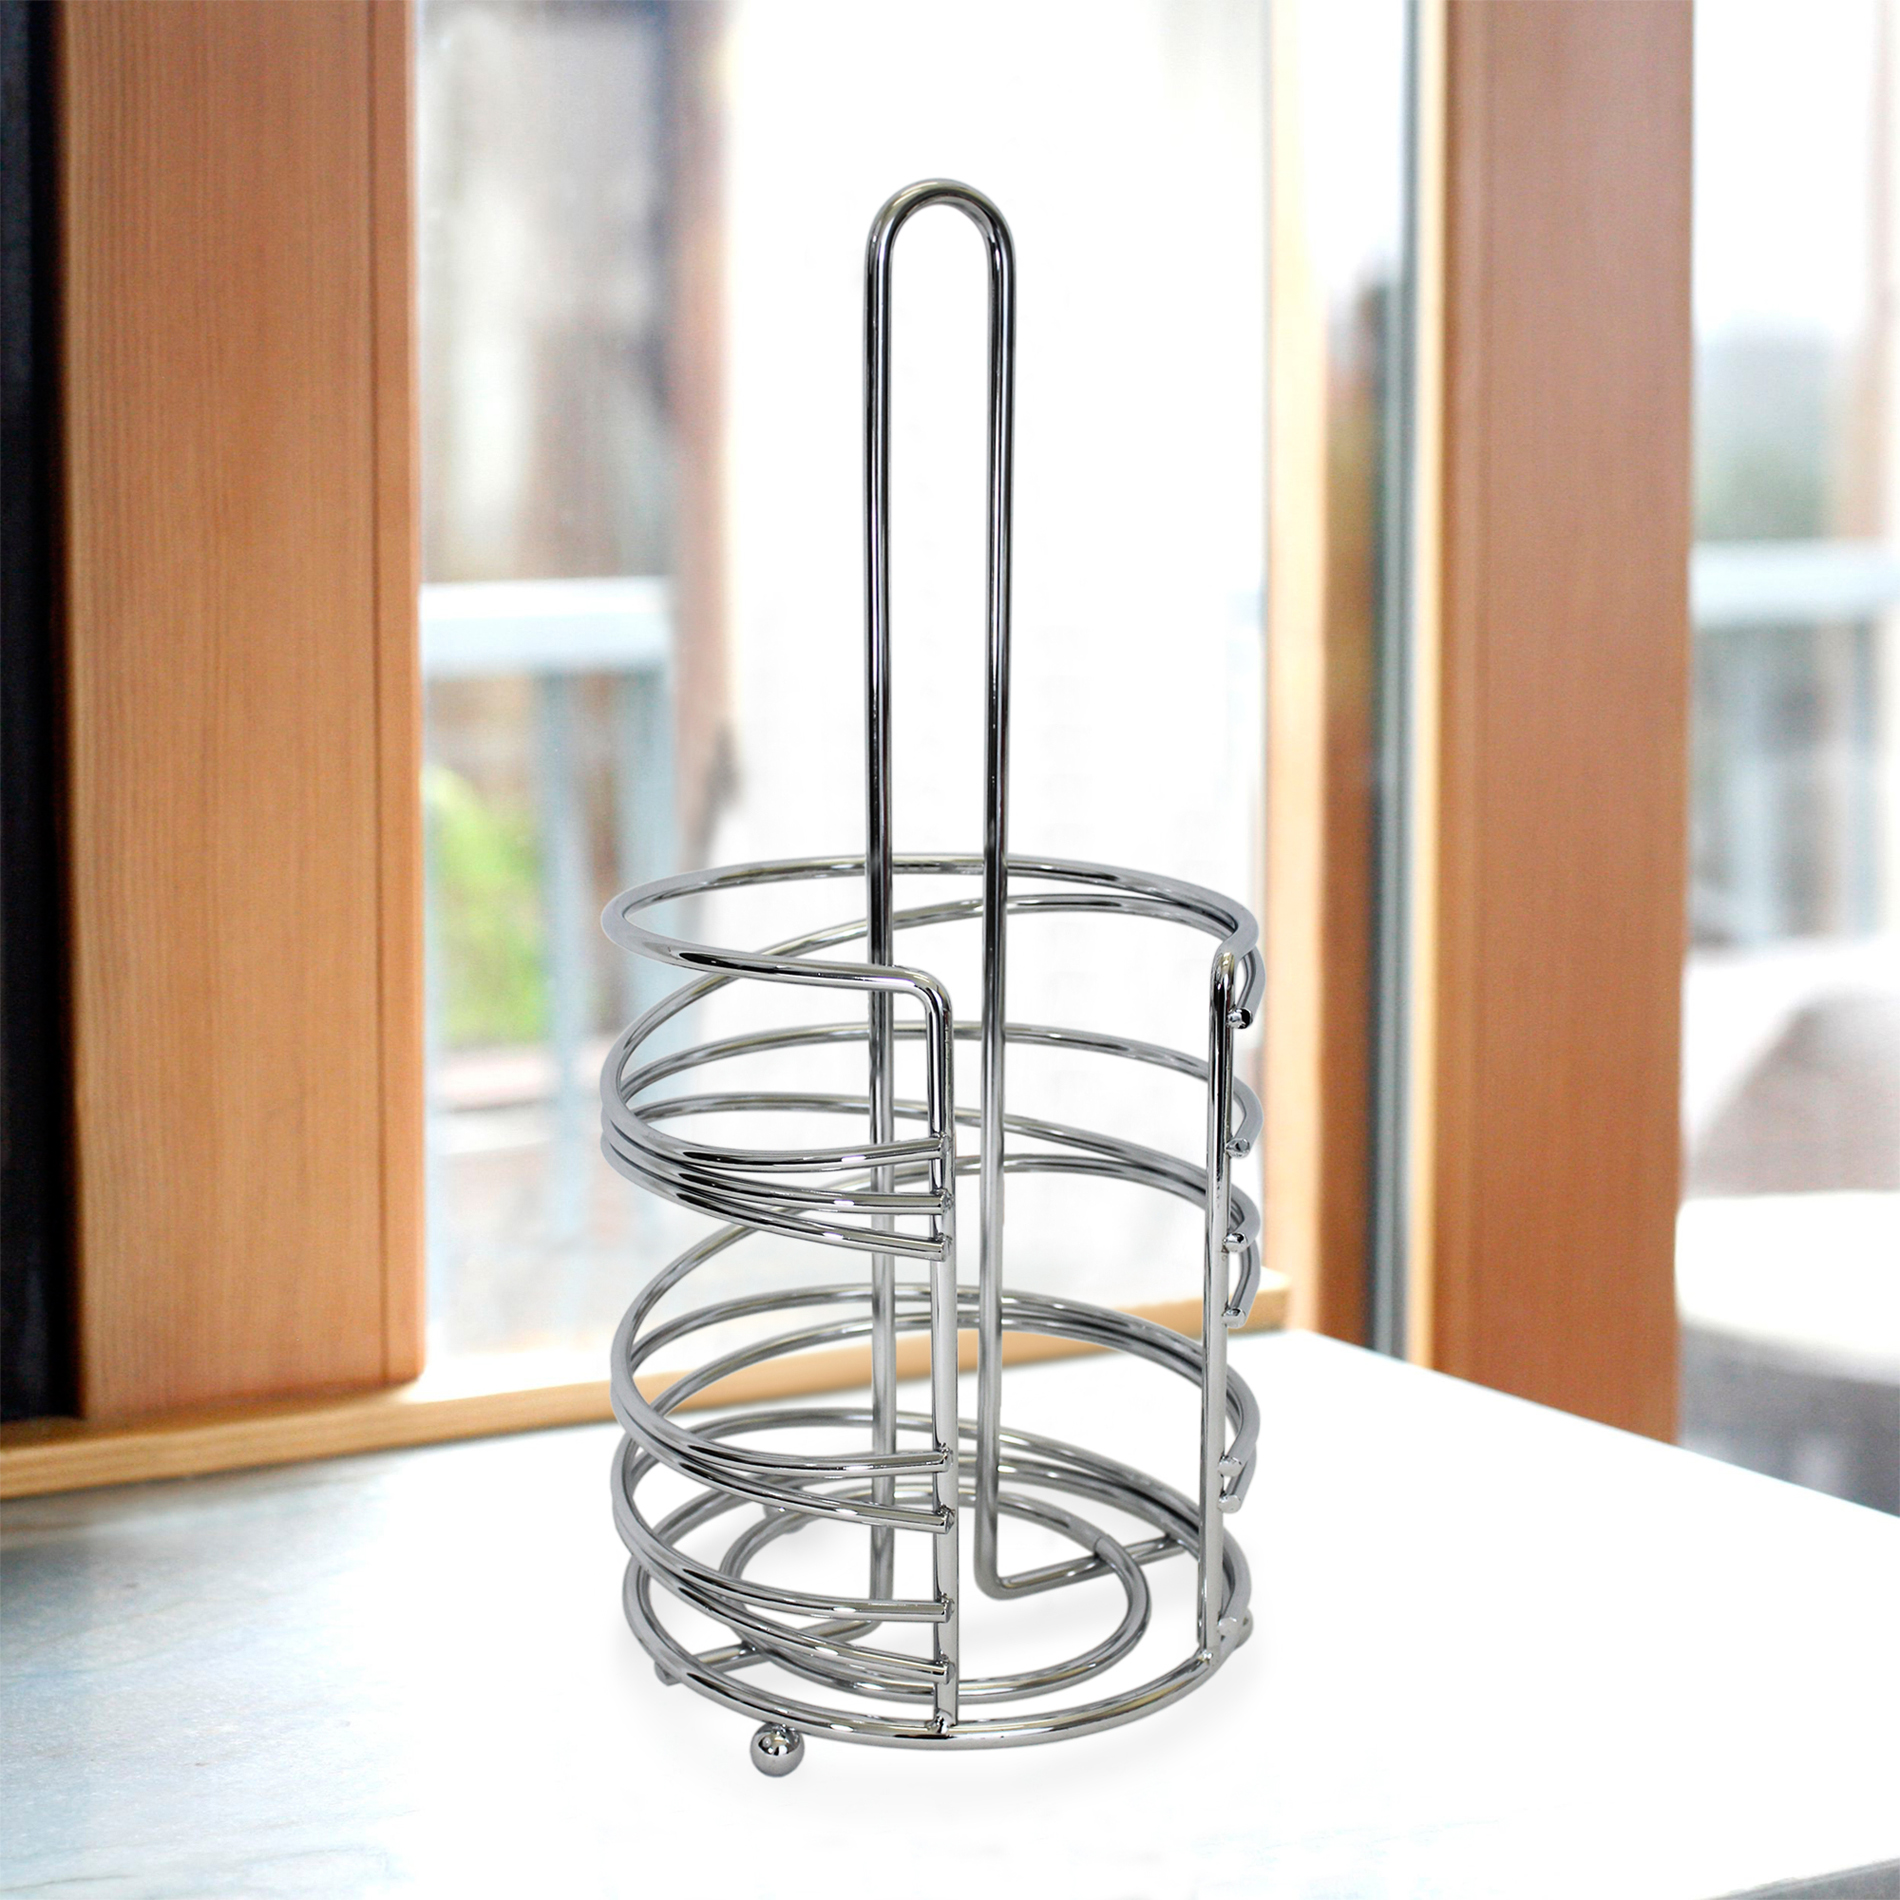 Paper Towel Holder Kmart Geo Collection Paper Towel Holder Chrome Shop Your Way